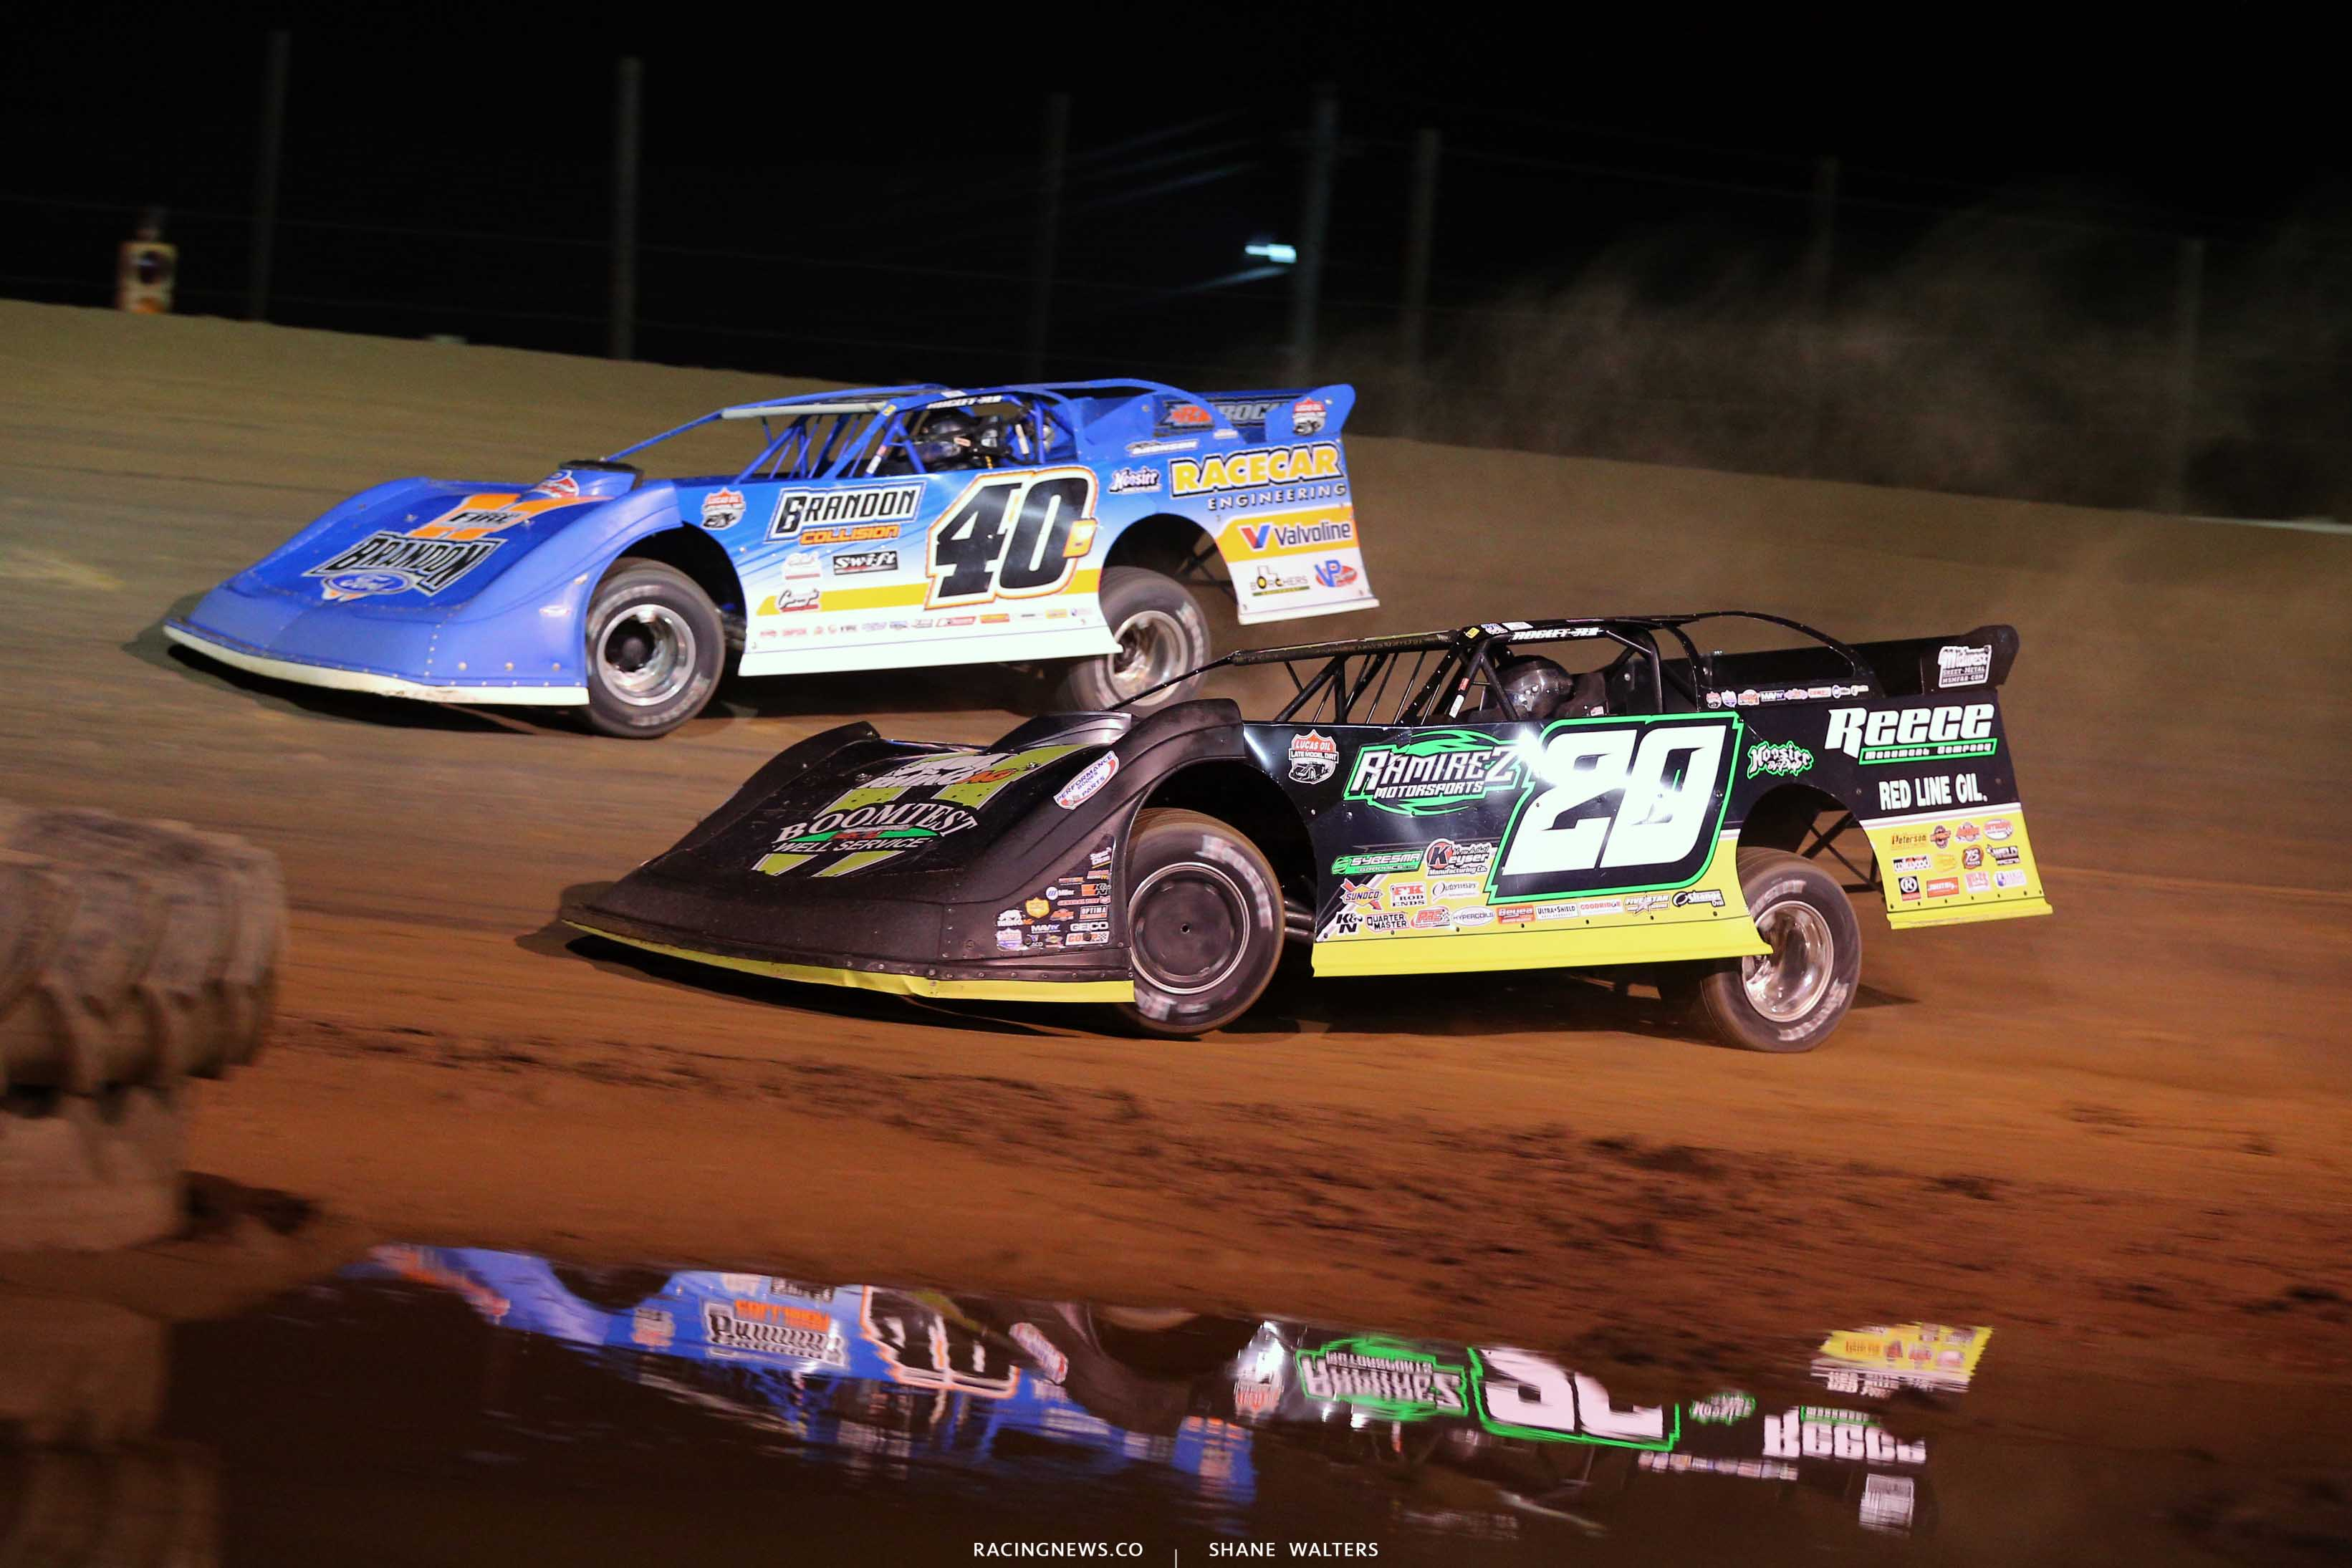 Kyle Bronson and Jimmy Owens at Raceway 7 - LOLMDS 8292